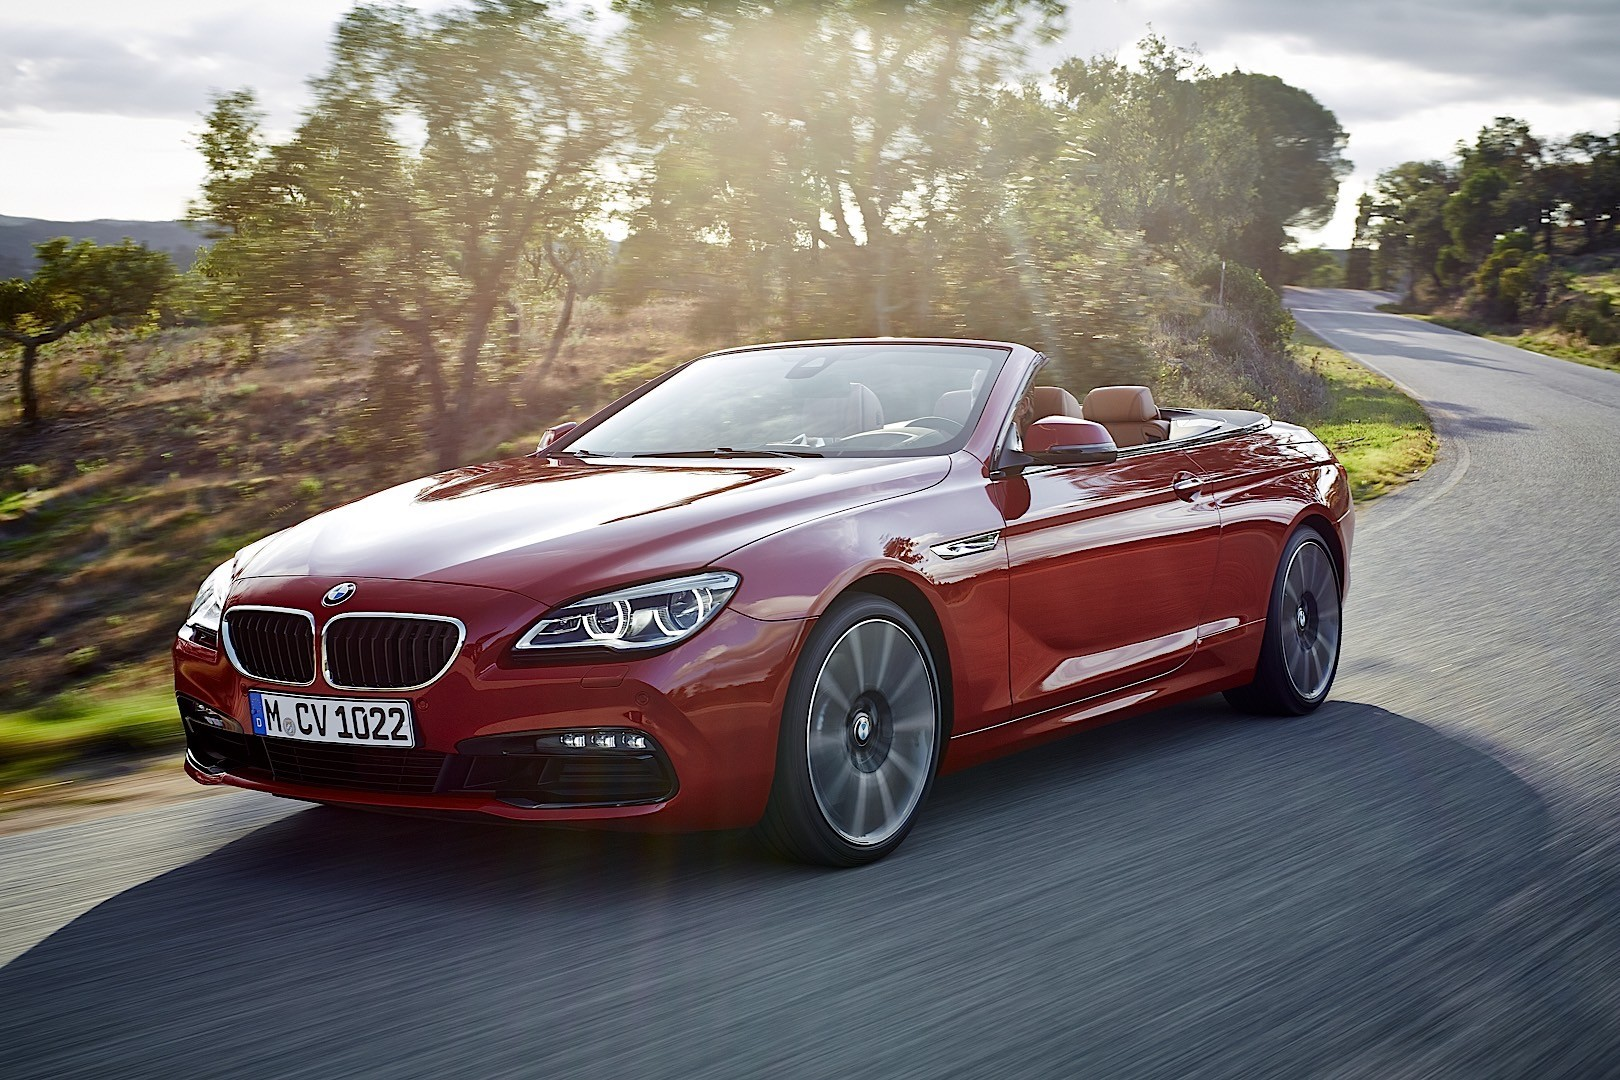 bmw 6 series convertible lci f12 specs photos 2015. Black Bedroom Furniture Sets. Home Design Ideas